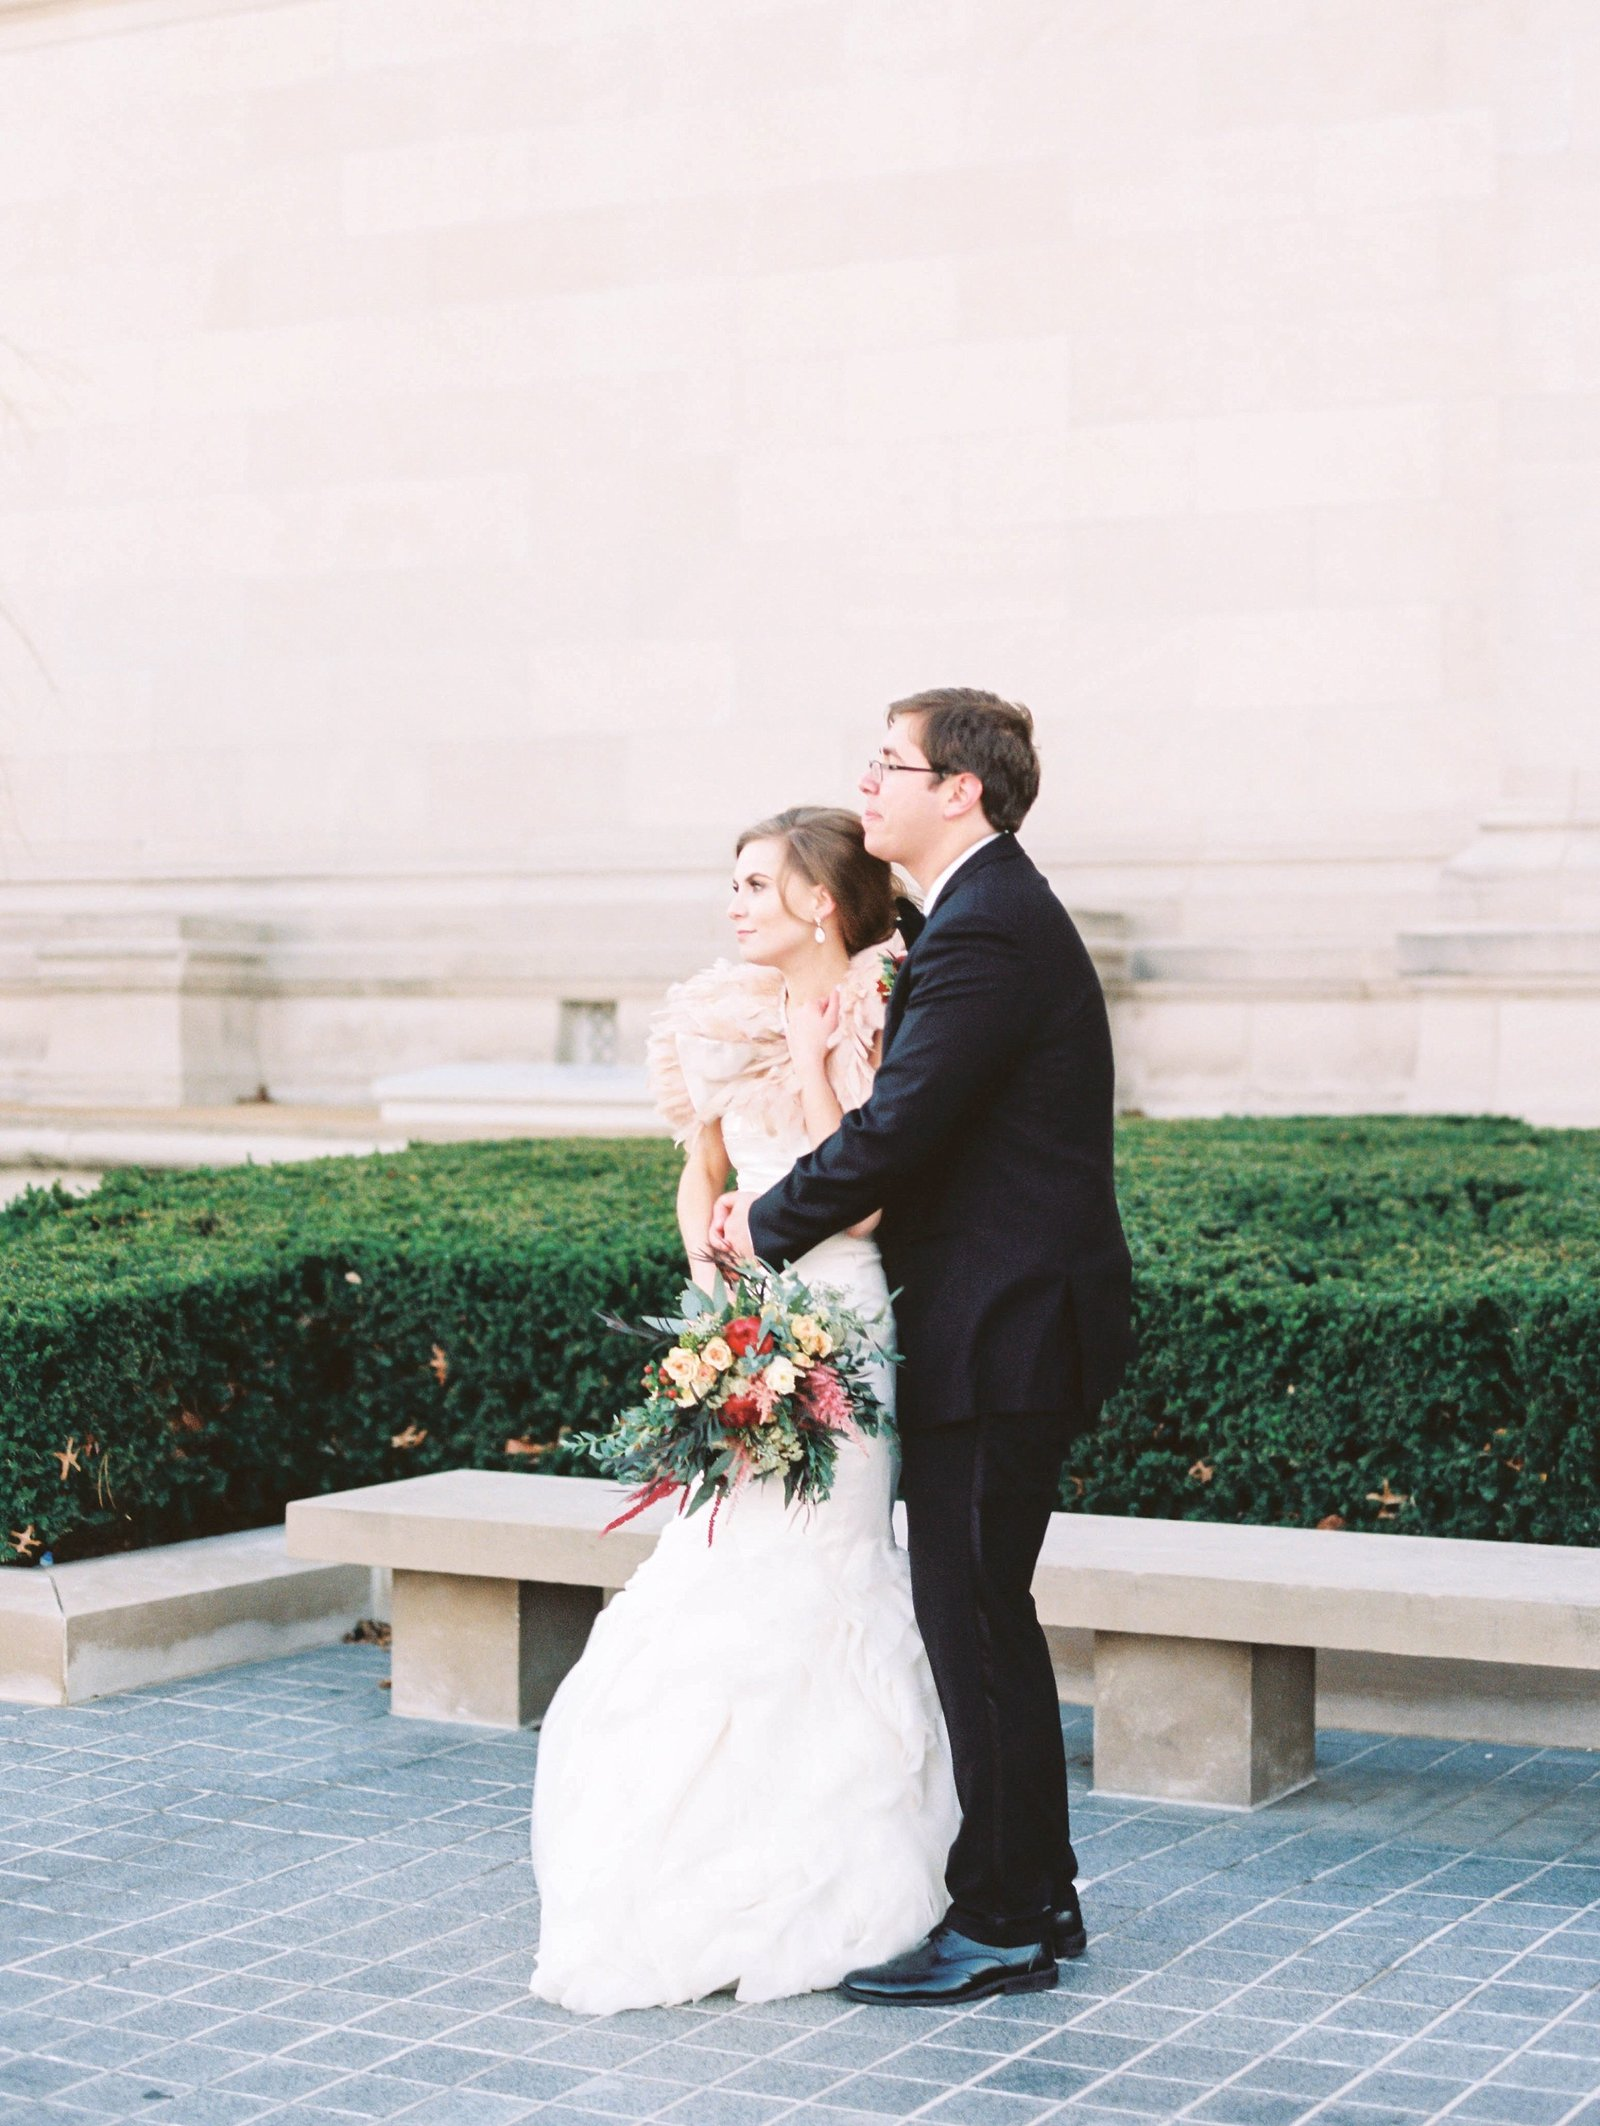 st.louis.wedding.photographer_0295